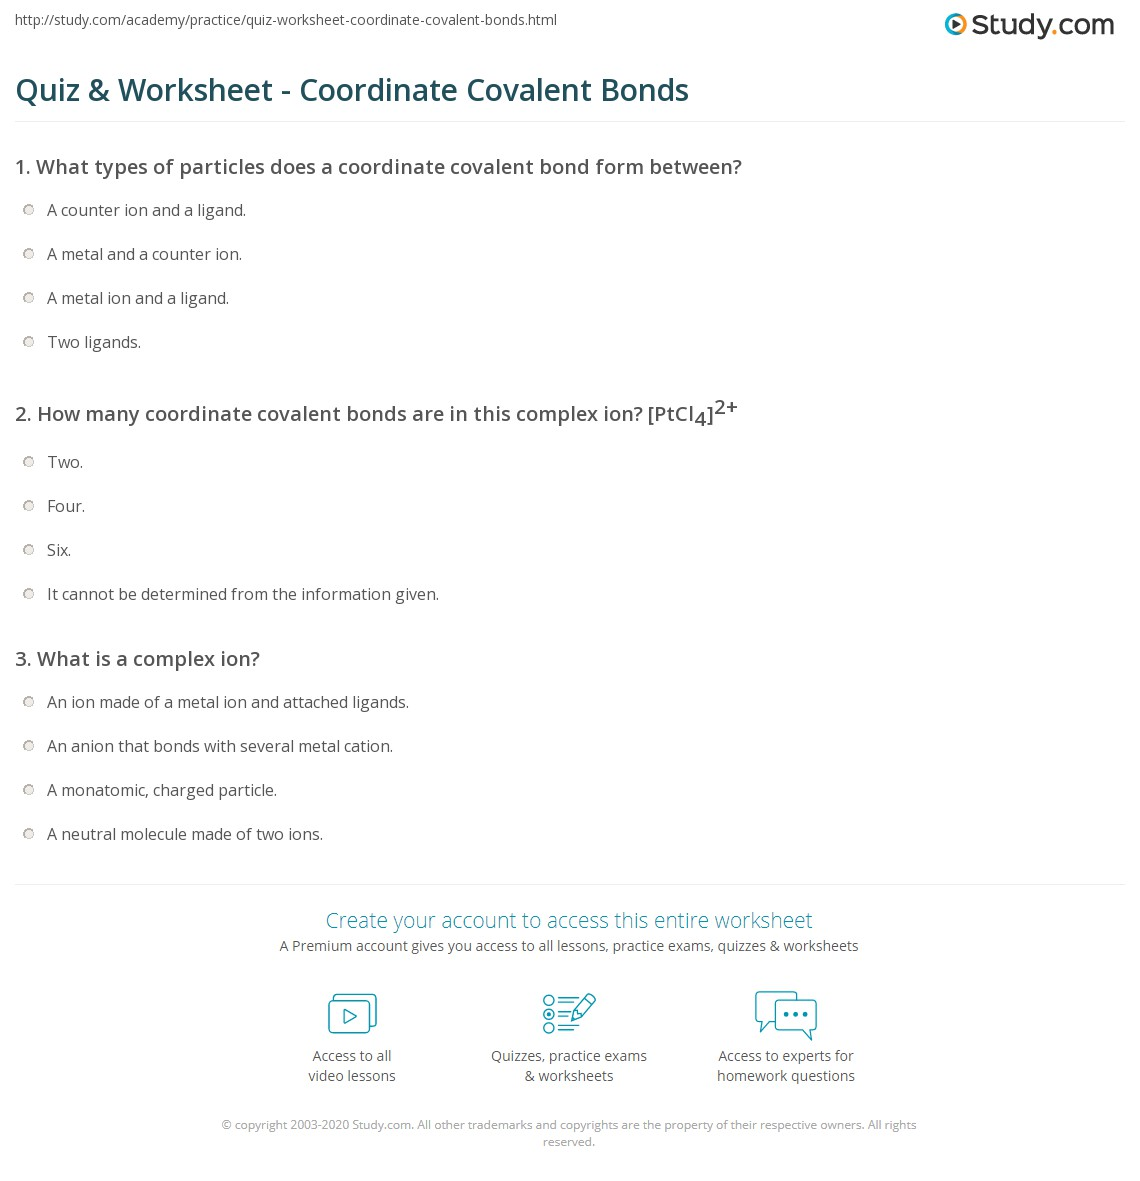 Quiz & Worksheet - Coordinate Covalent Bonds | Study.com